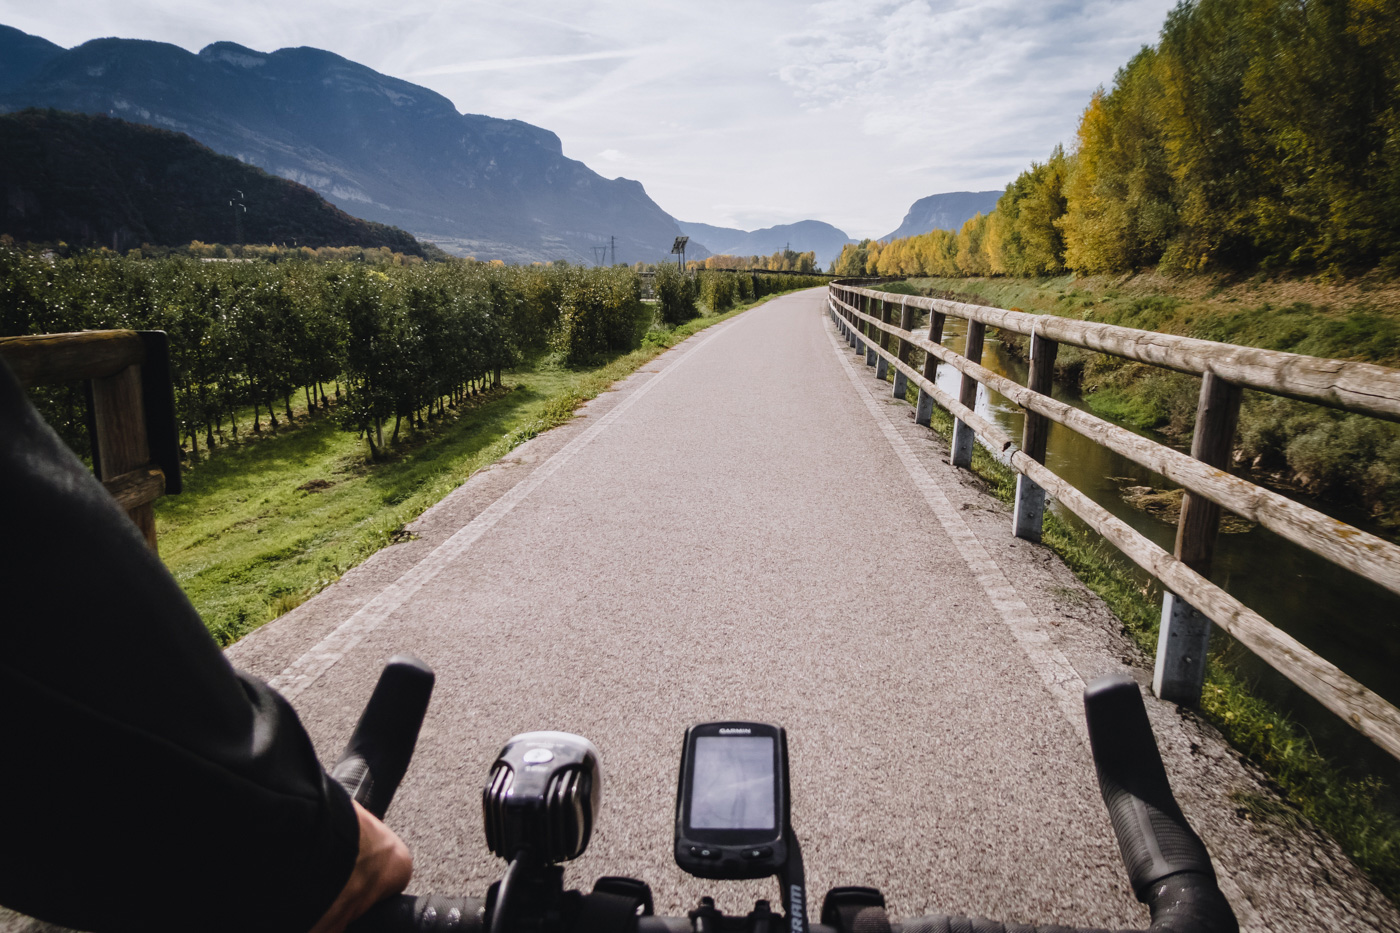 Bikepacking to the top of Trentino – Tremalzo Pass